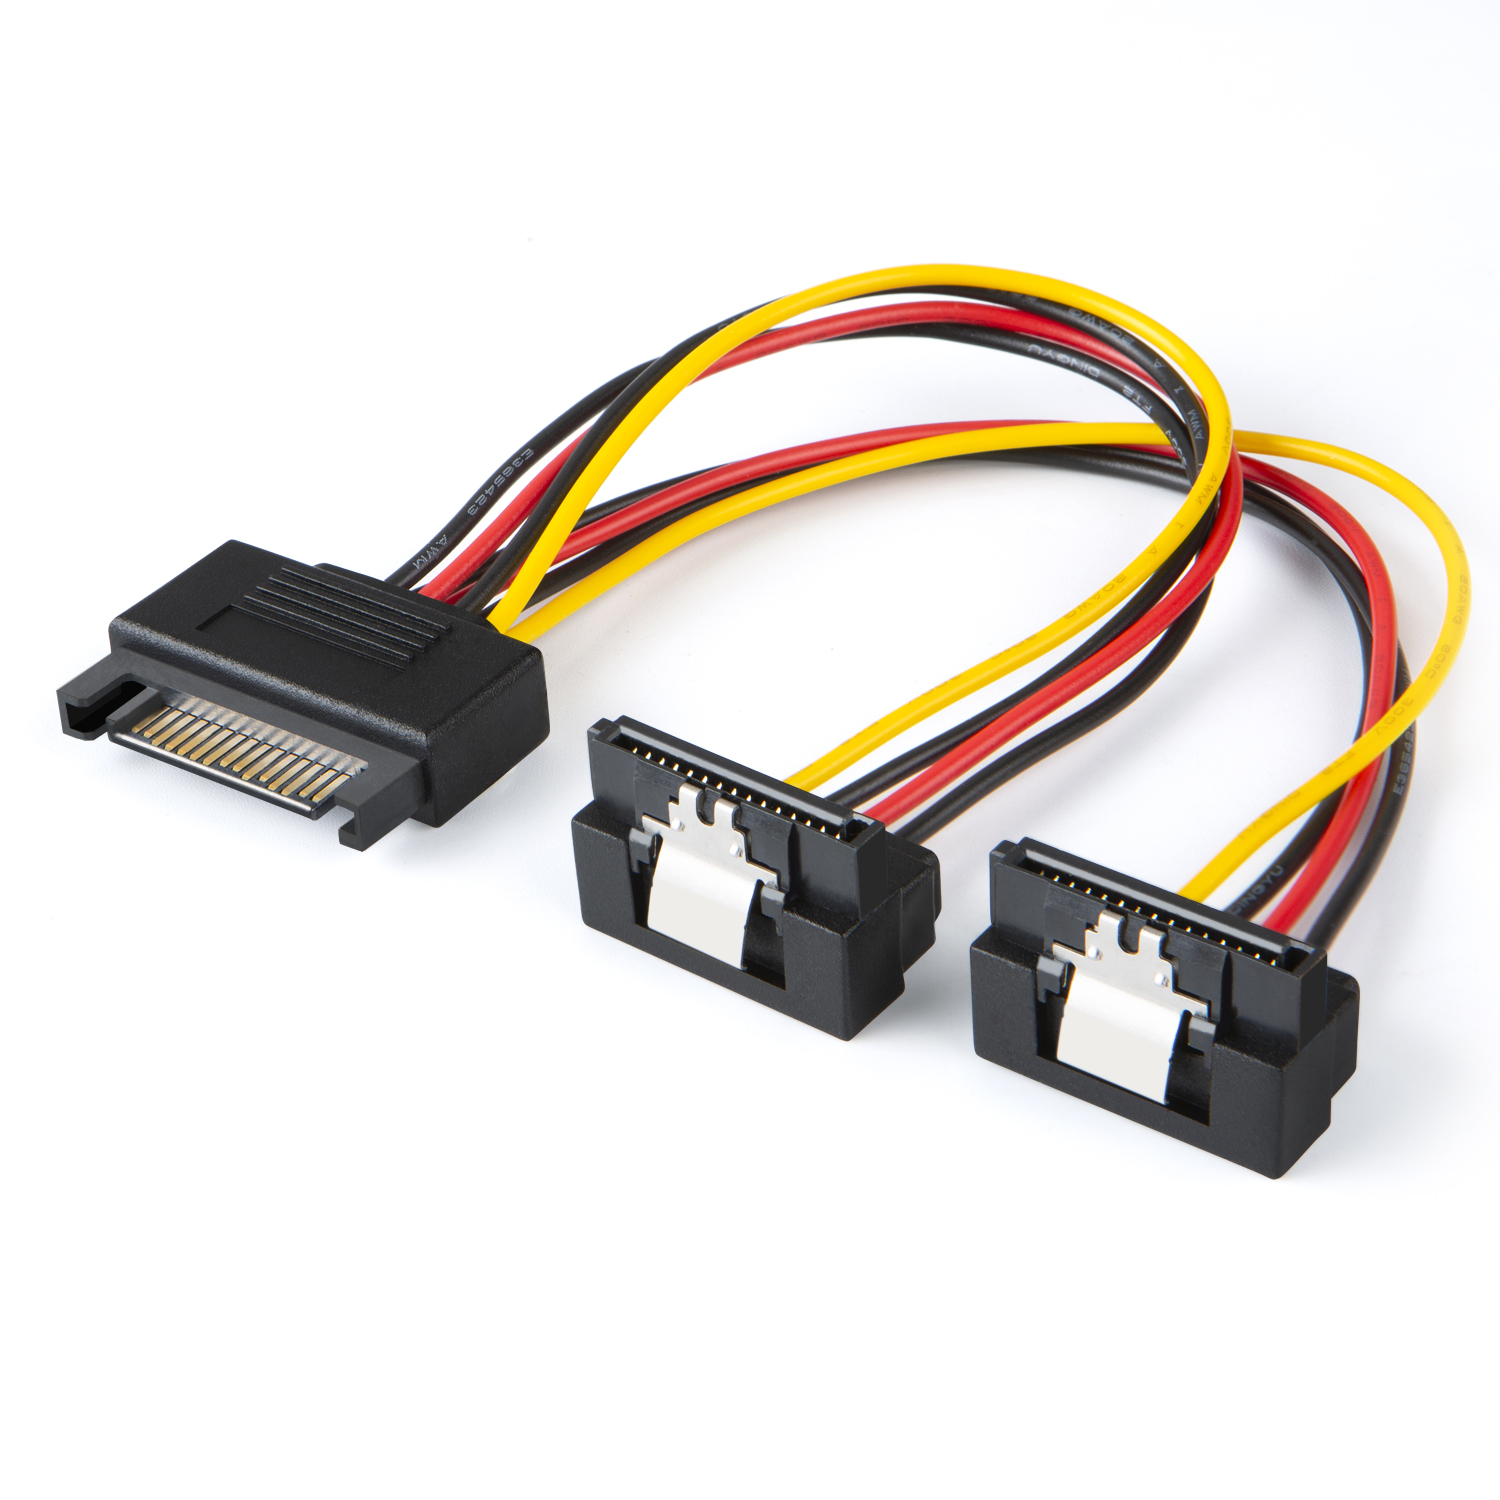 High definition Sff-8087 To Sata Iii Cable - SATA Power Cable,#CS0105 – CableCreation